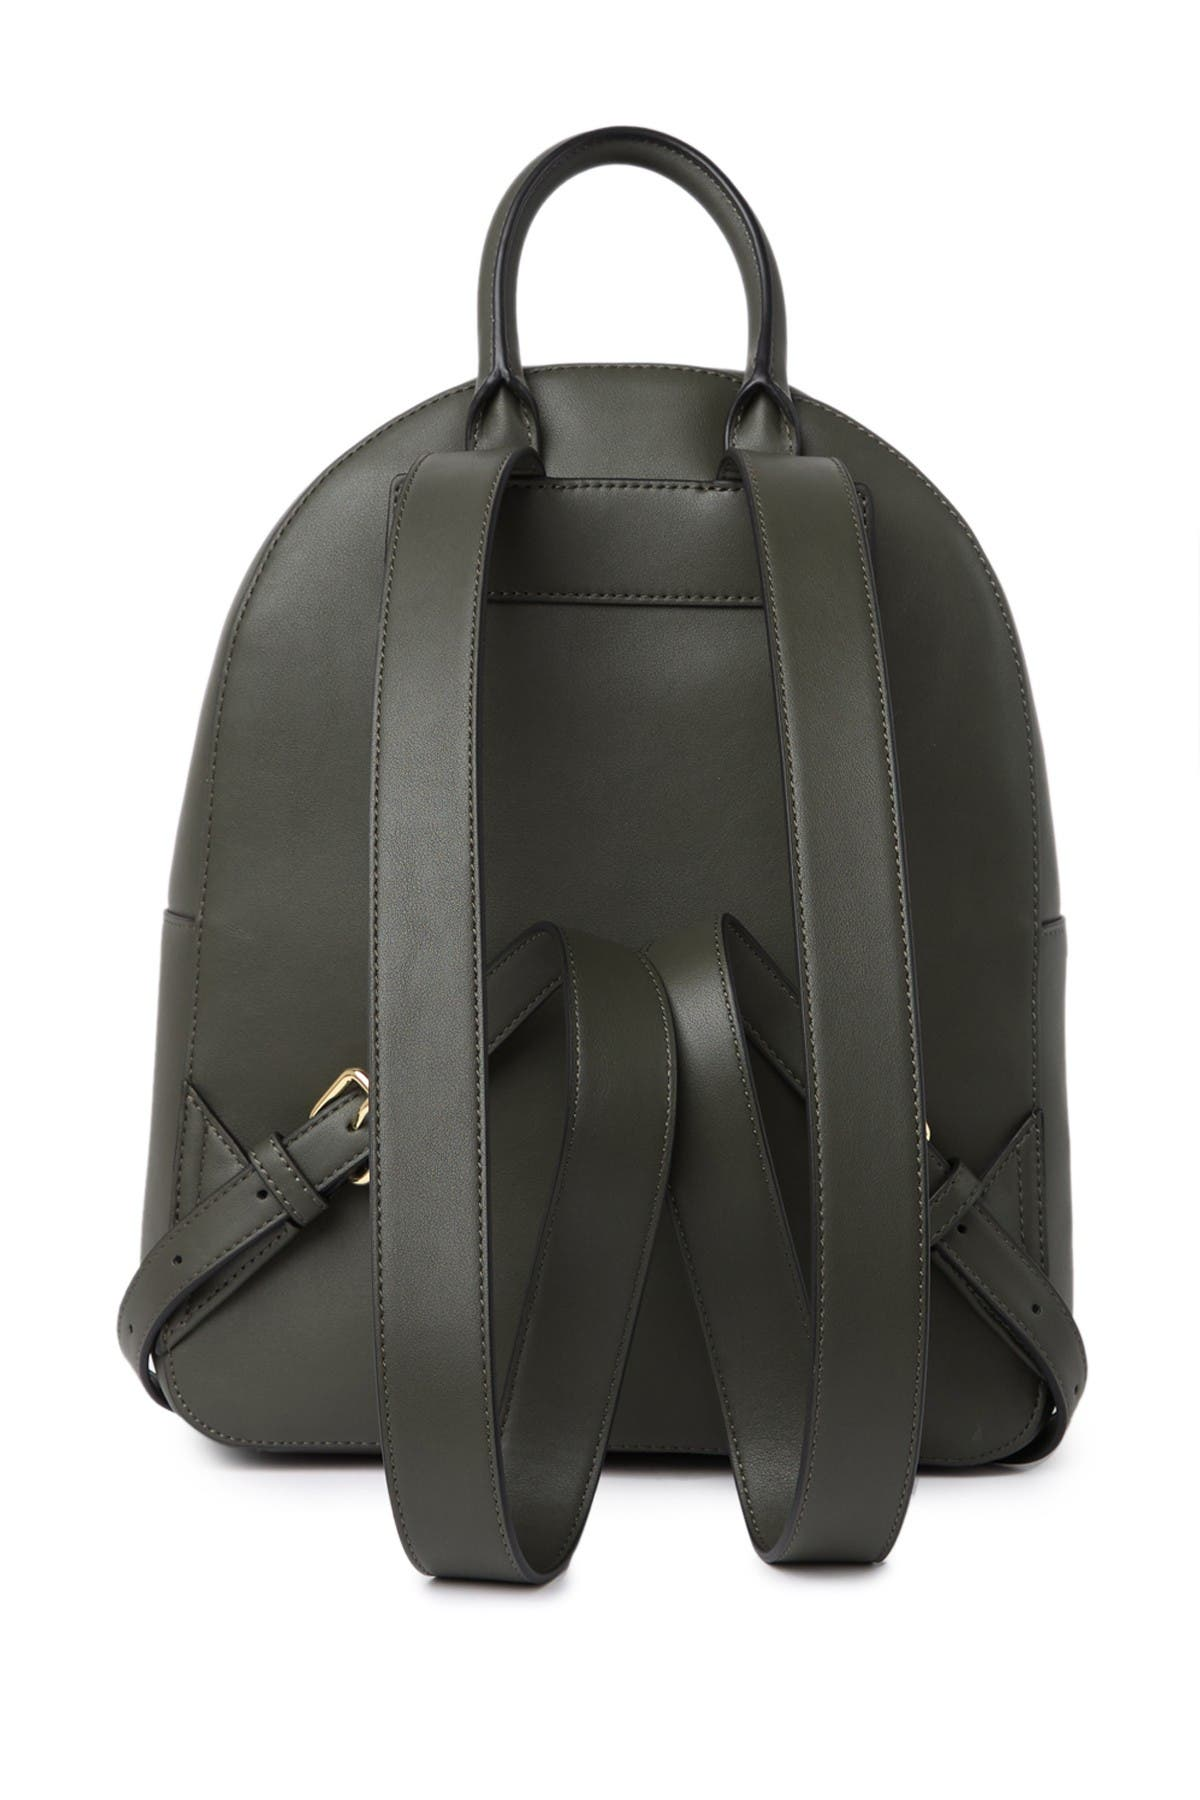 Image of LOVE Moschino Borsa Backpack